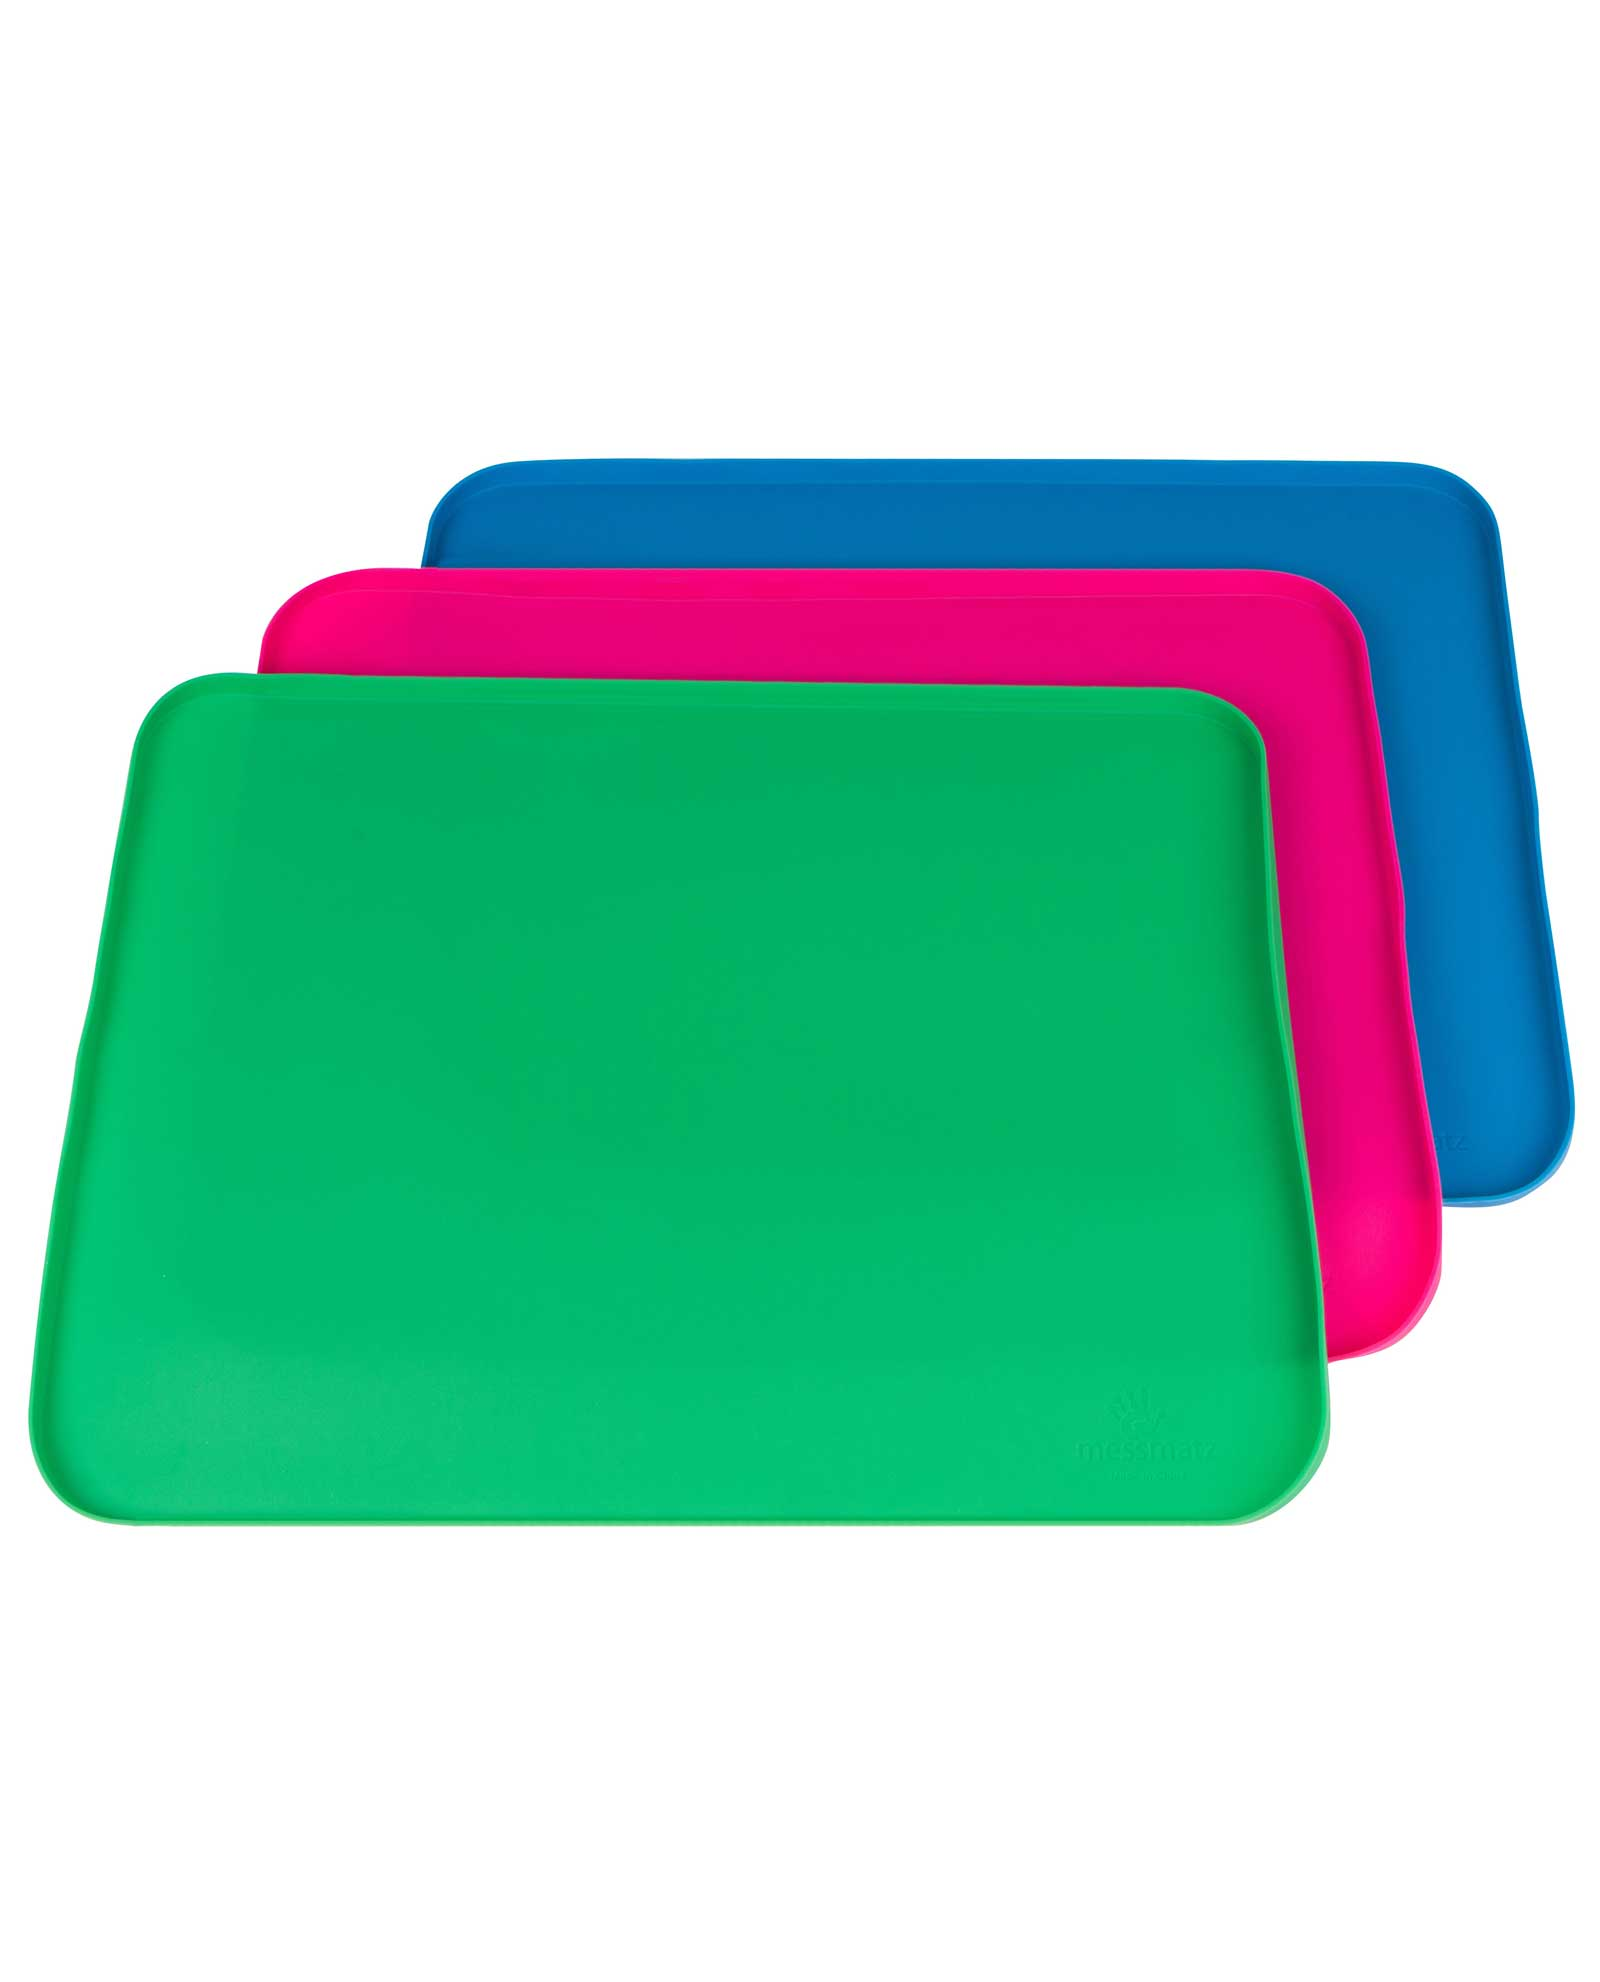 Messmatz 174 Silicone Craft Mat Home Size Plasmart Toys